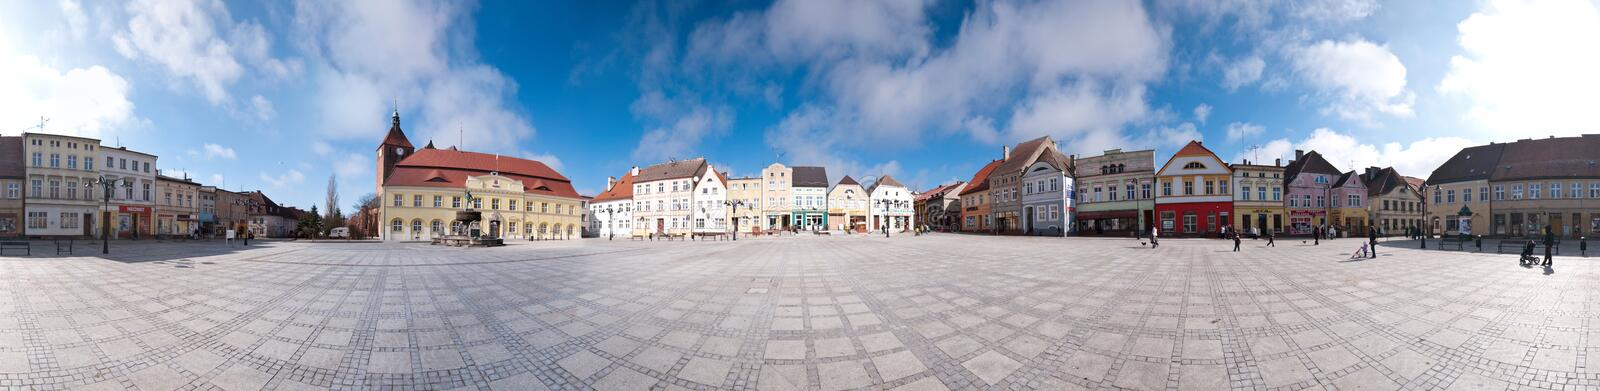 Download Town square panorama editorial stock image. Image of poland - 18862564